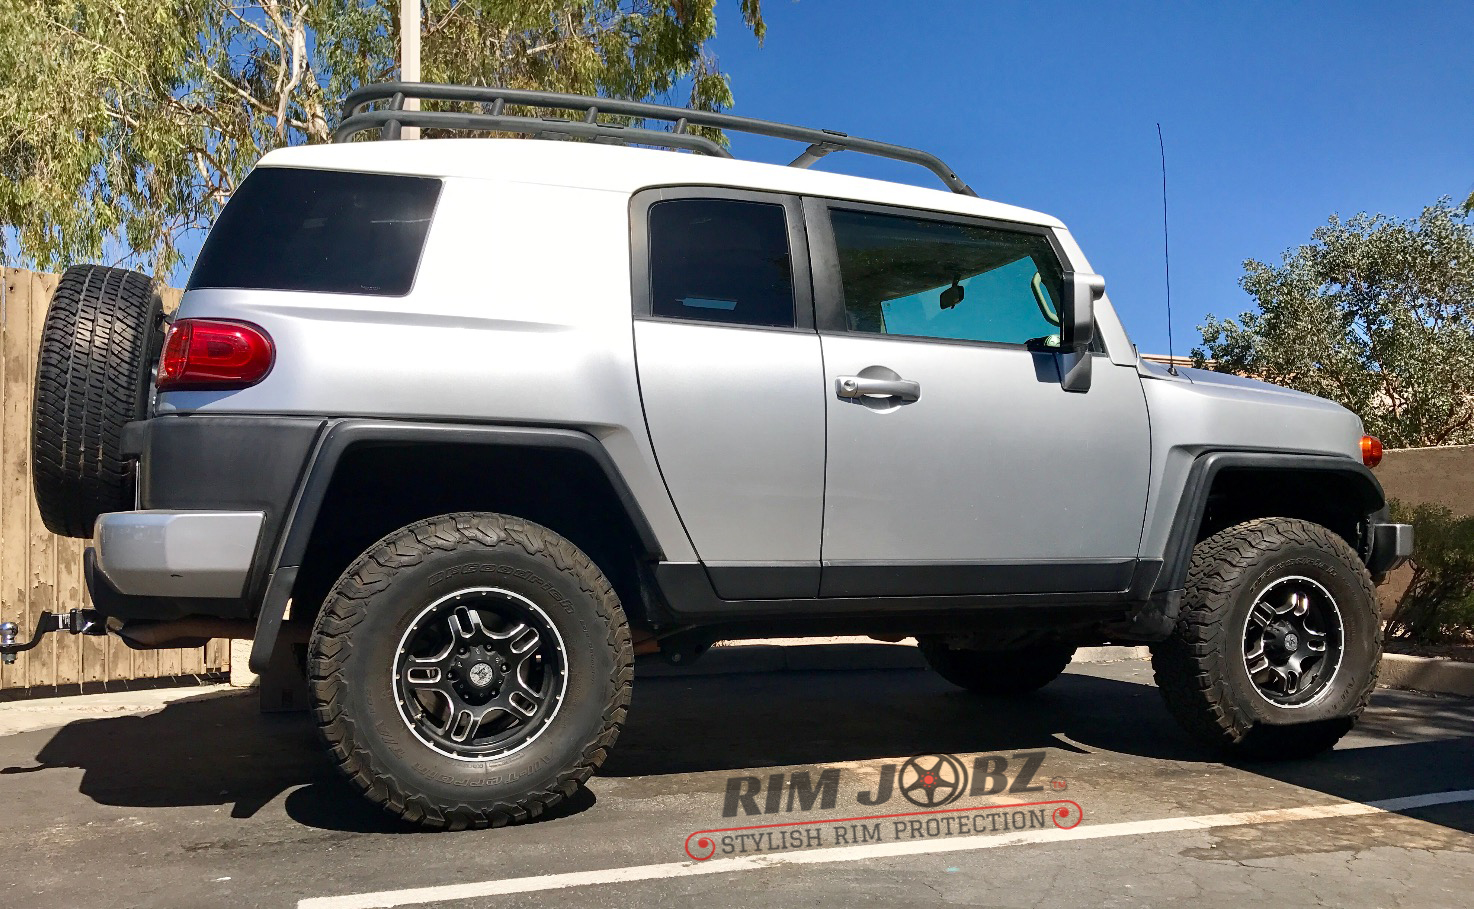 Silver RimSavers on Fj Cruiser